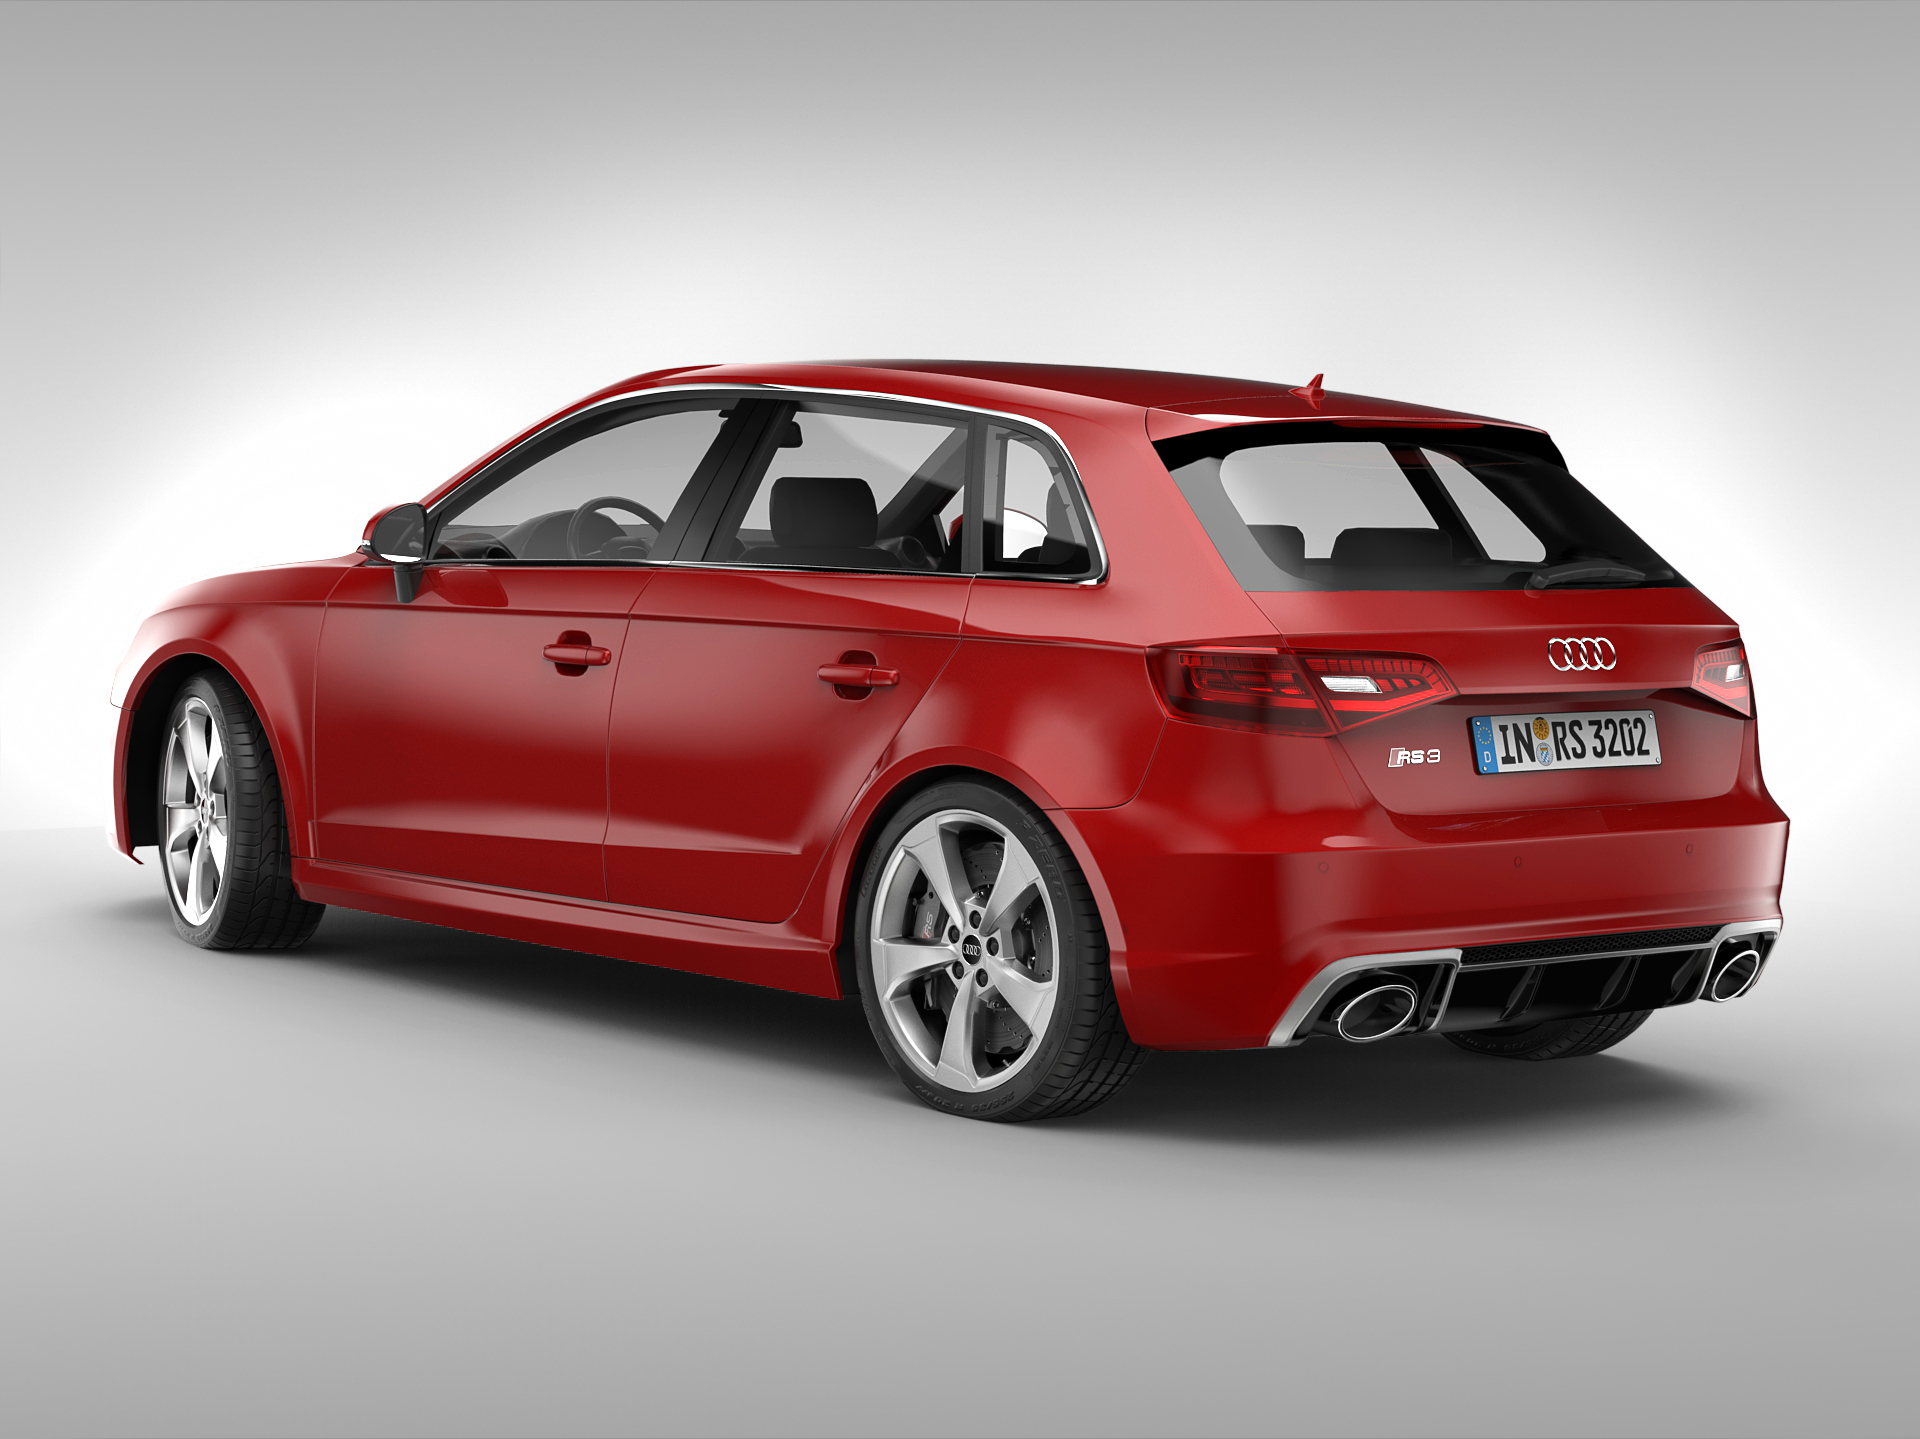 audi rs3 sportback 2016 3d model buy audi rs3 sportback 2016 3d model flatpyramid. Black Bedroom Furniture Sets. Home Design Ideas